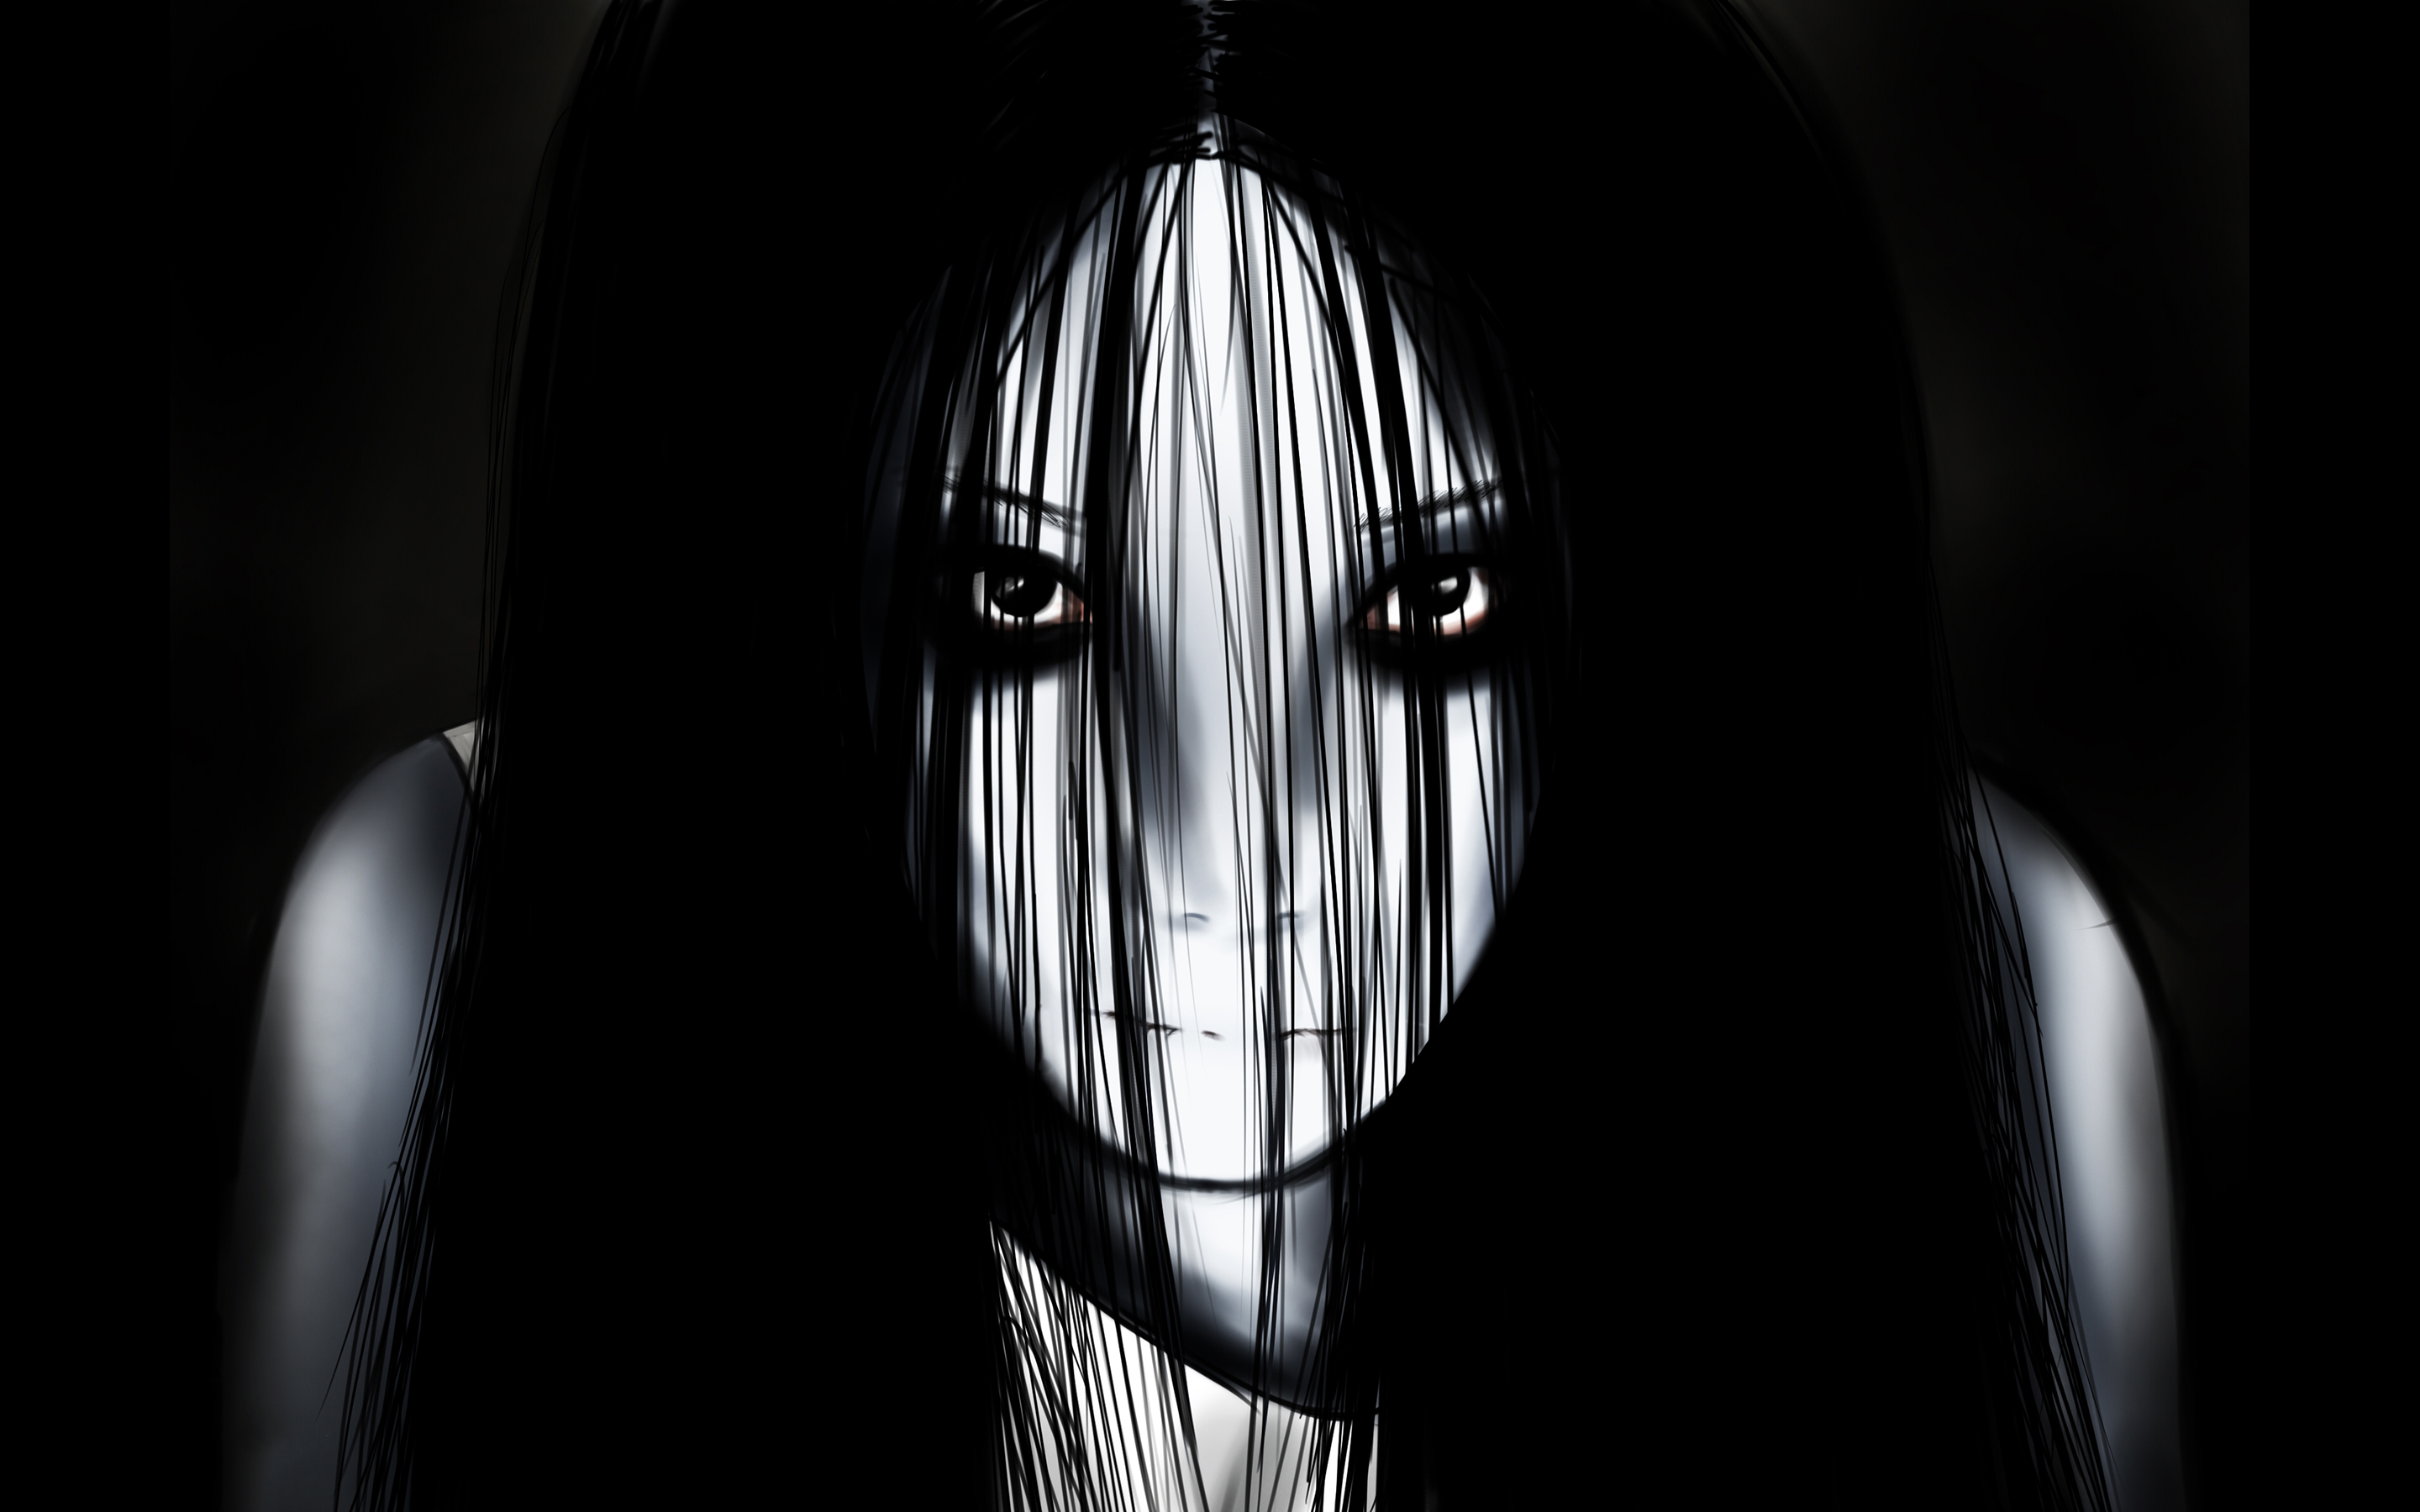 The grudge art